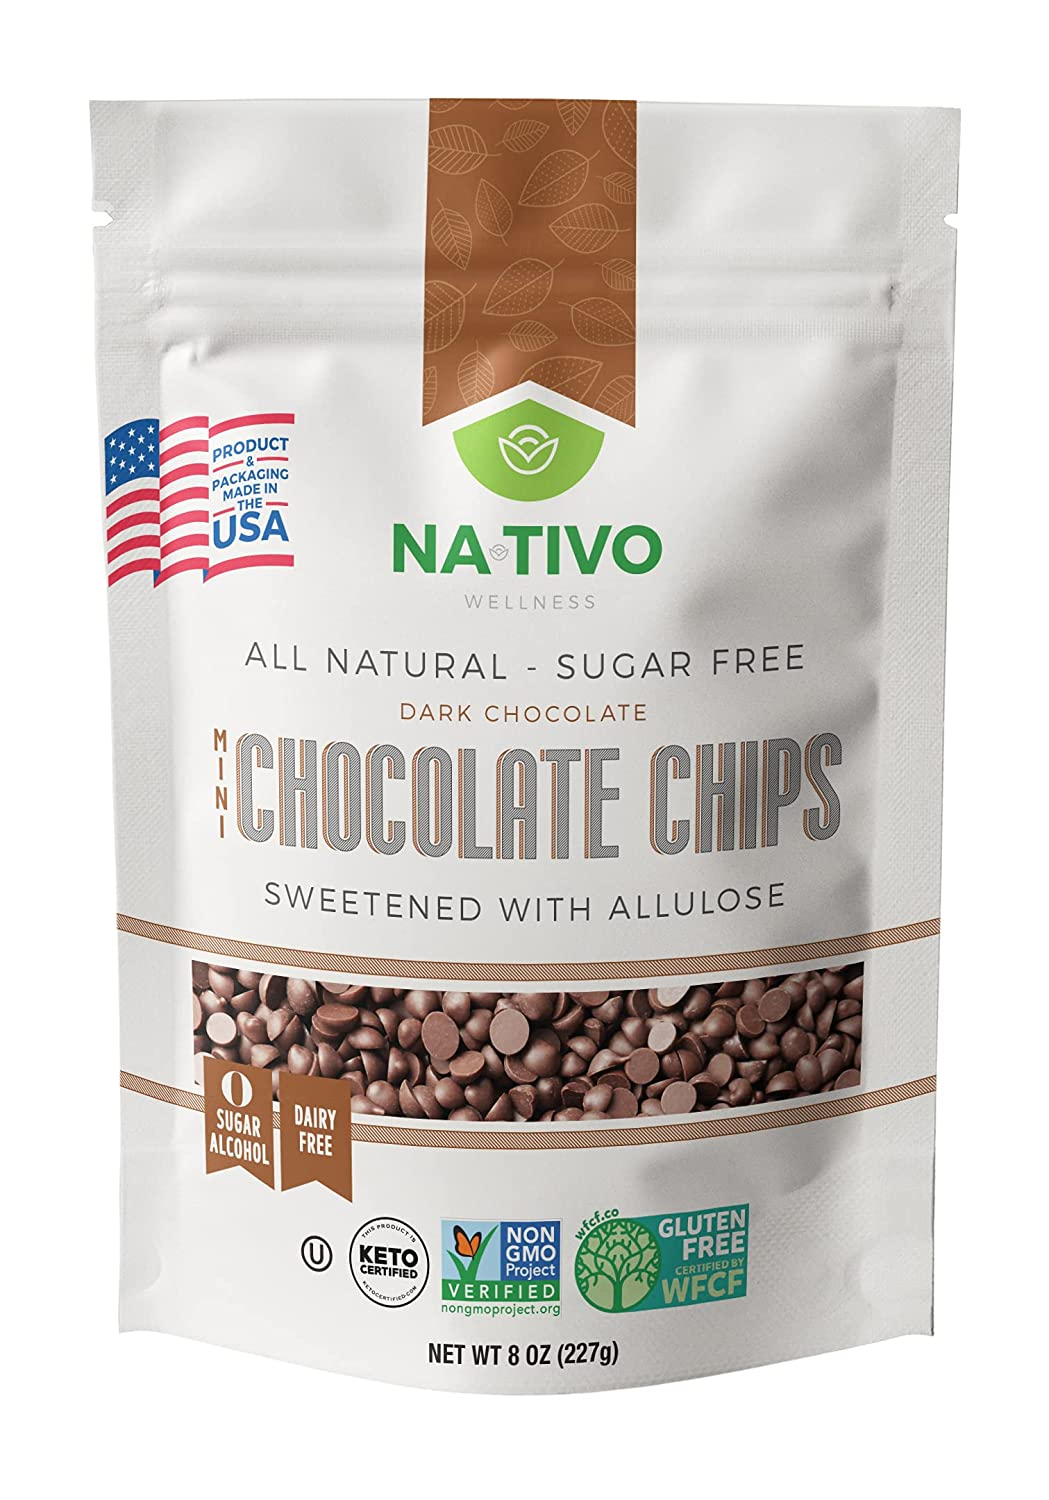 NATIVO DARK outlet MINI CHOCOLATE CHIPS SWEETENED ALLULOSE - Super popular specialty store MADE WITH